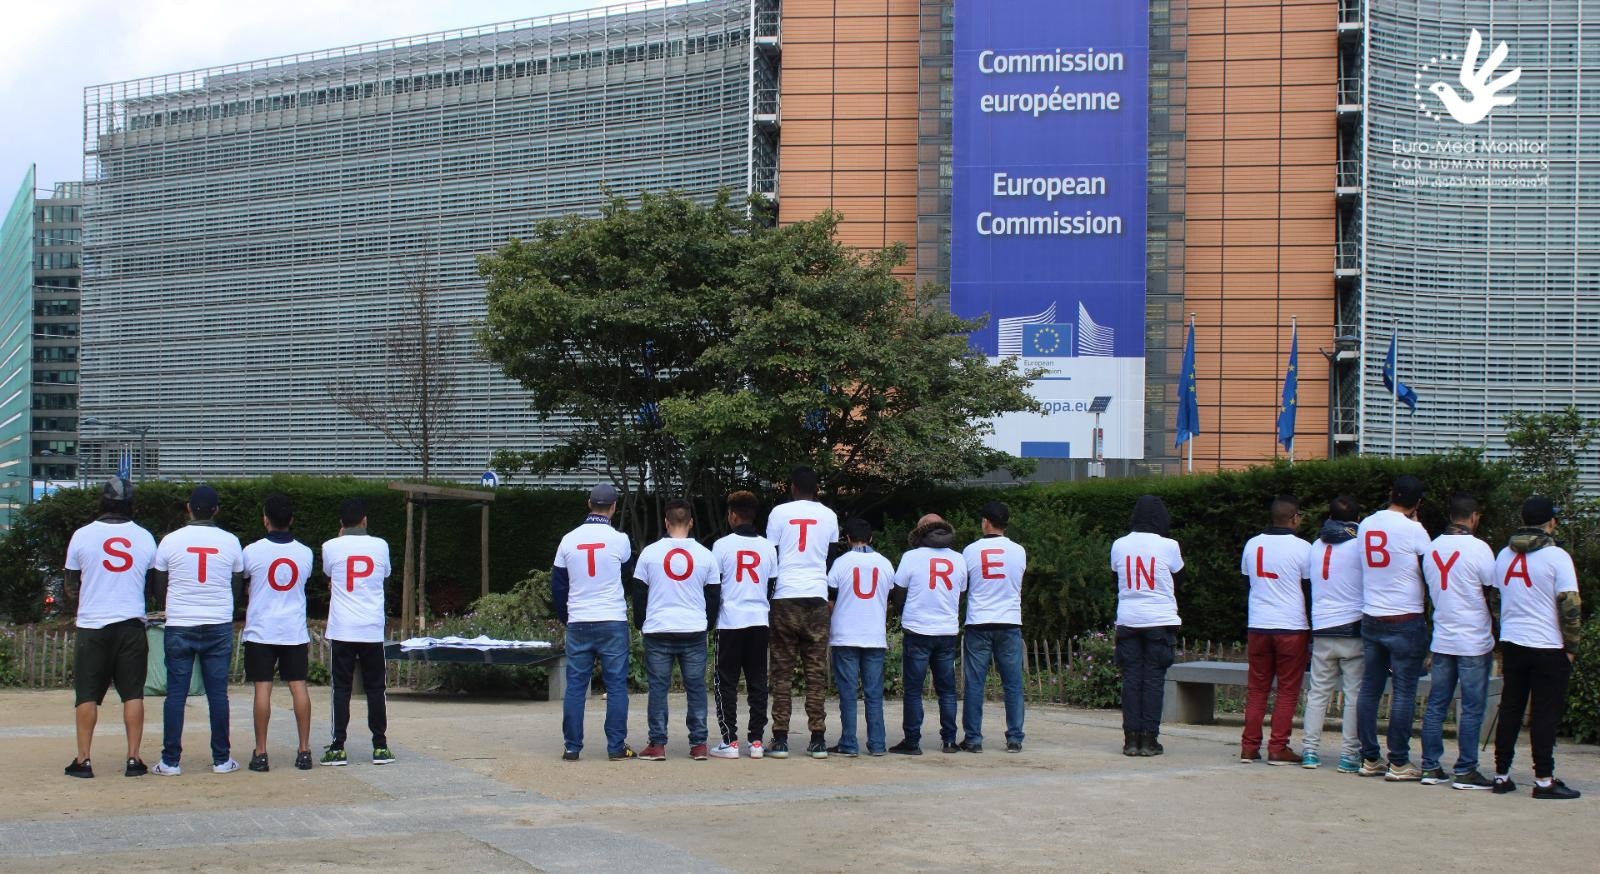 Euro-Med organizes a vigil in front of European Commission  against torture in Libya